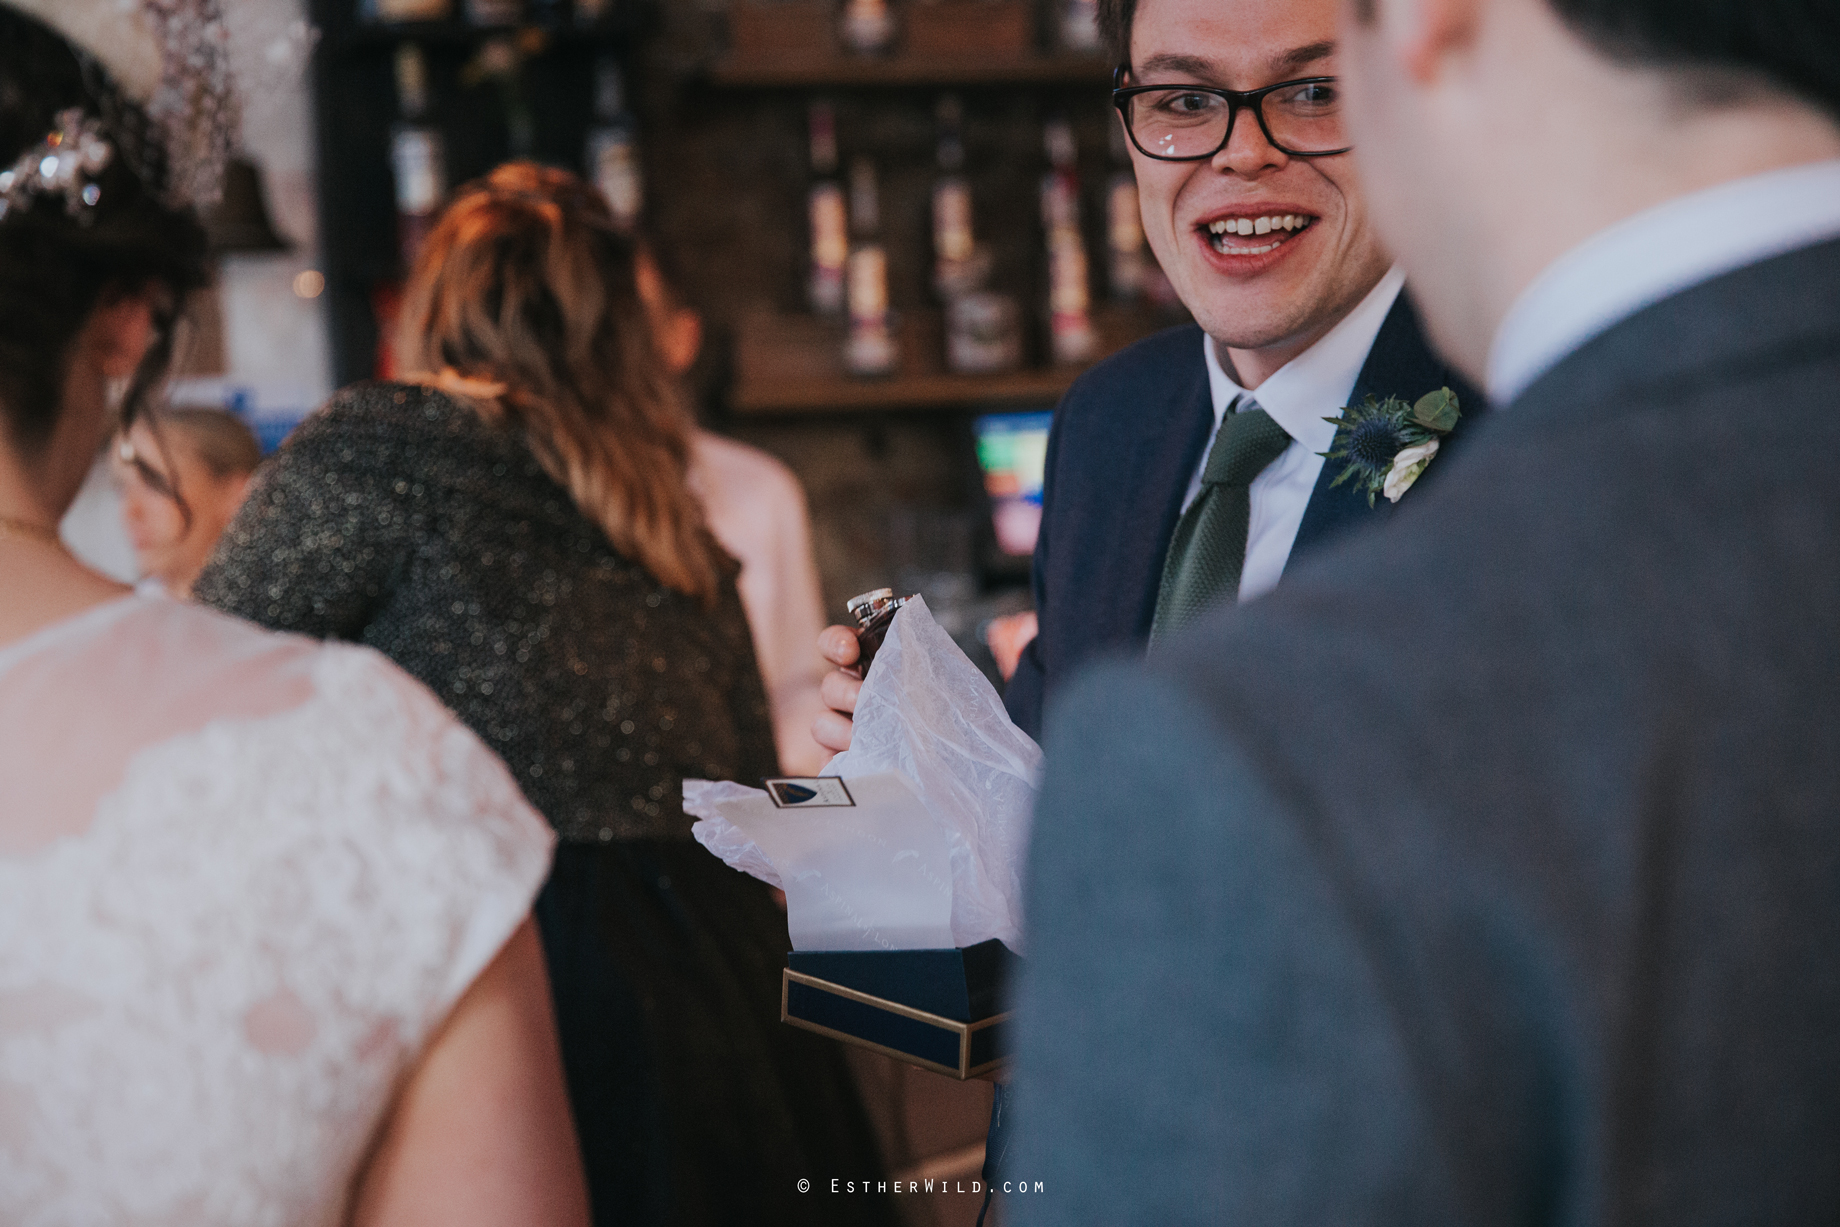 Islington_Town_Hall_Assembly_Hall_Council_Chamber_The_Star_Pub_London_Sacred_Wedding_Copyright_Esther_Wild_Photographer_IMG_1240.jpg